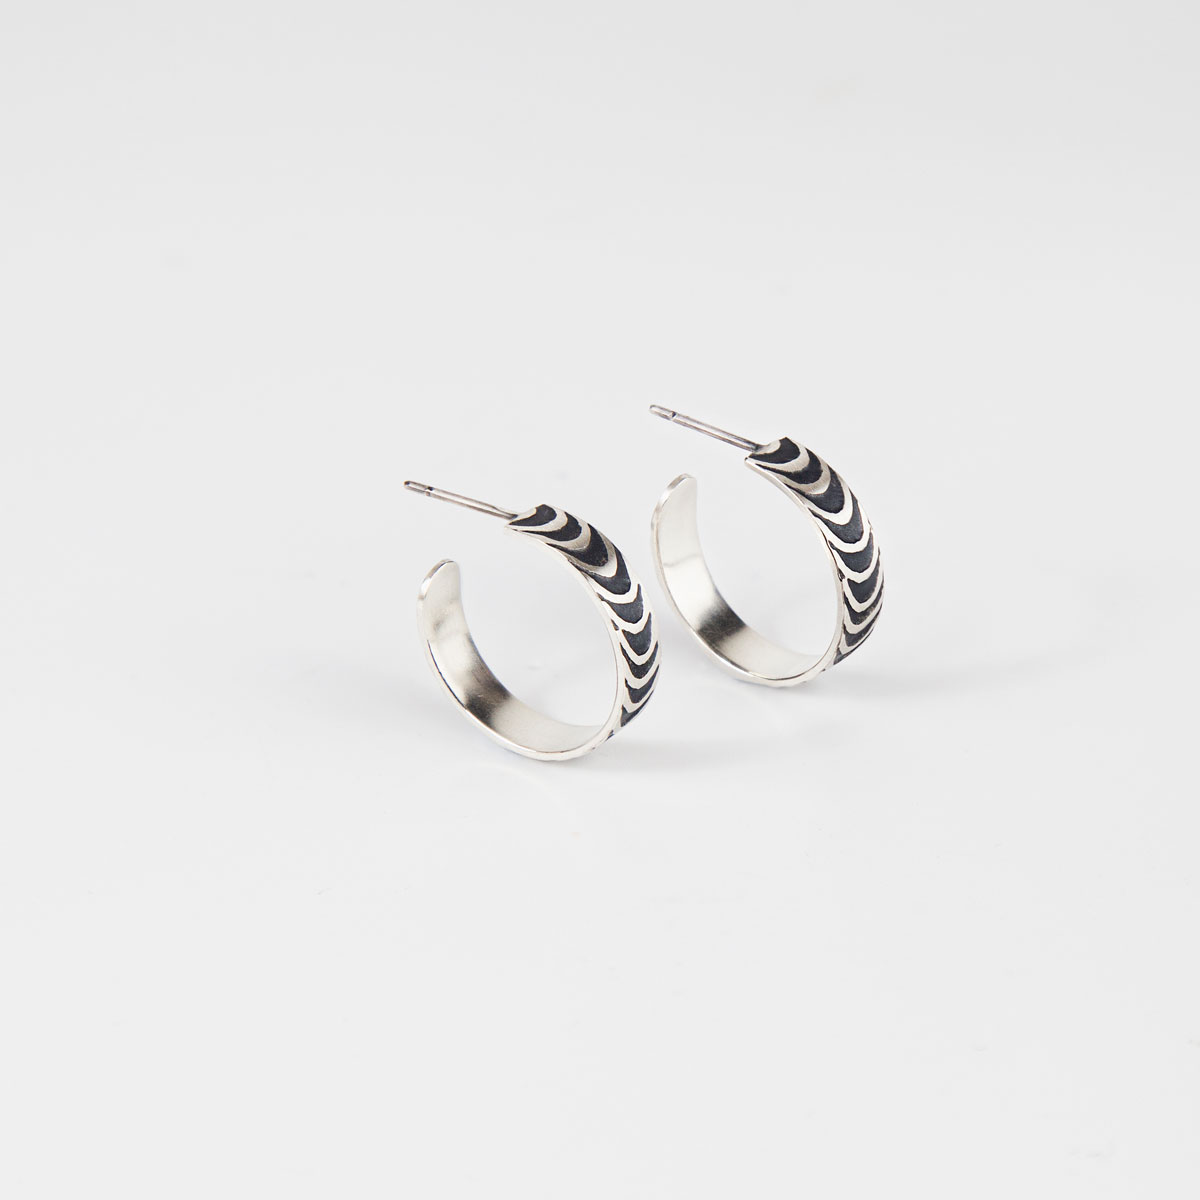 'Finesse' Silver and Black Hoop Earrings, Small